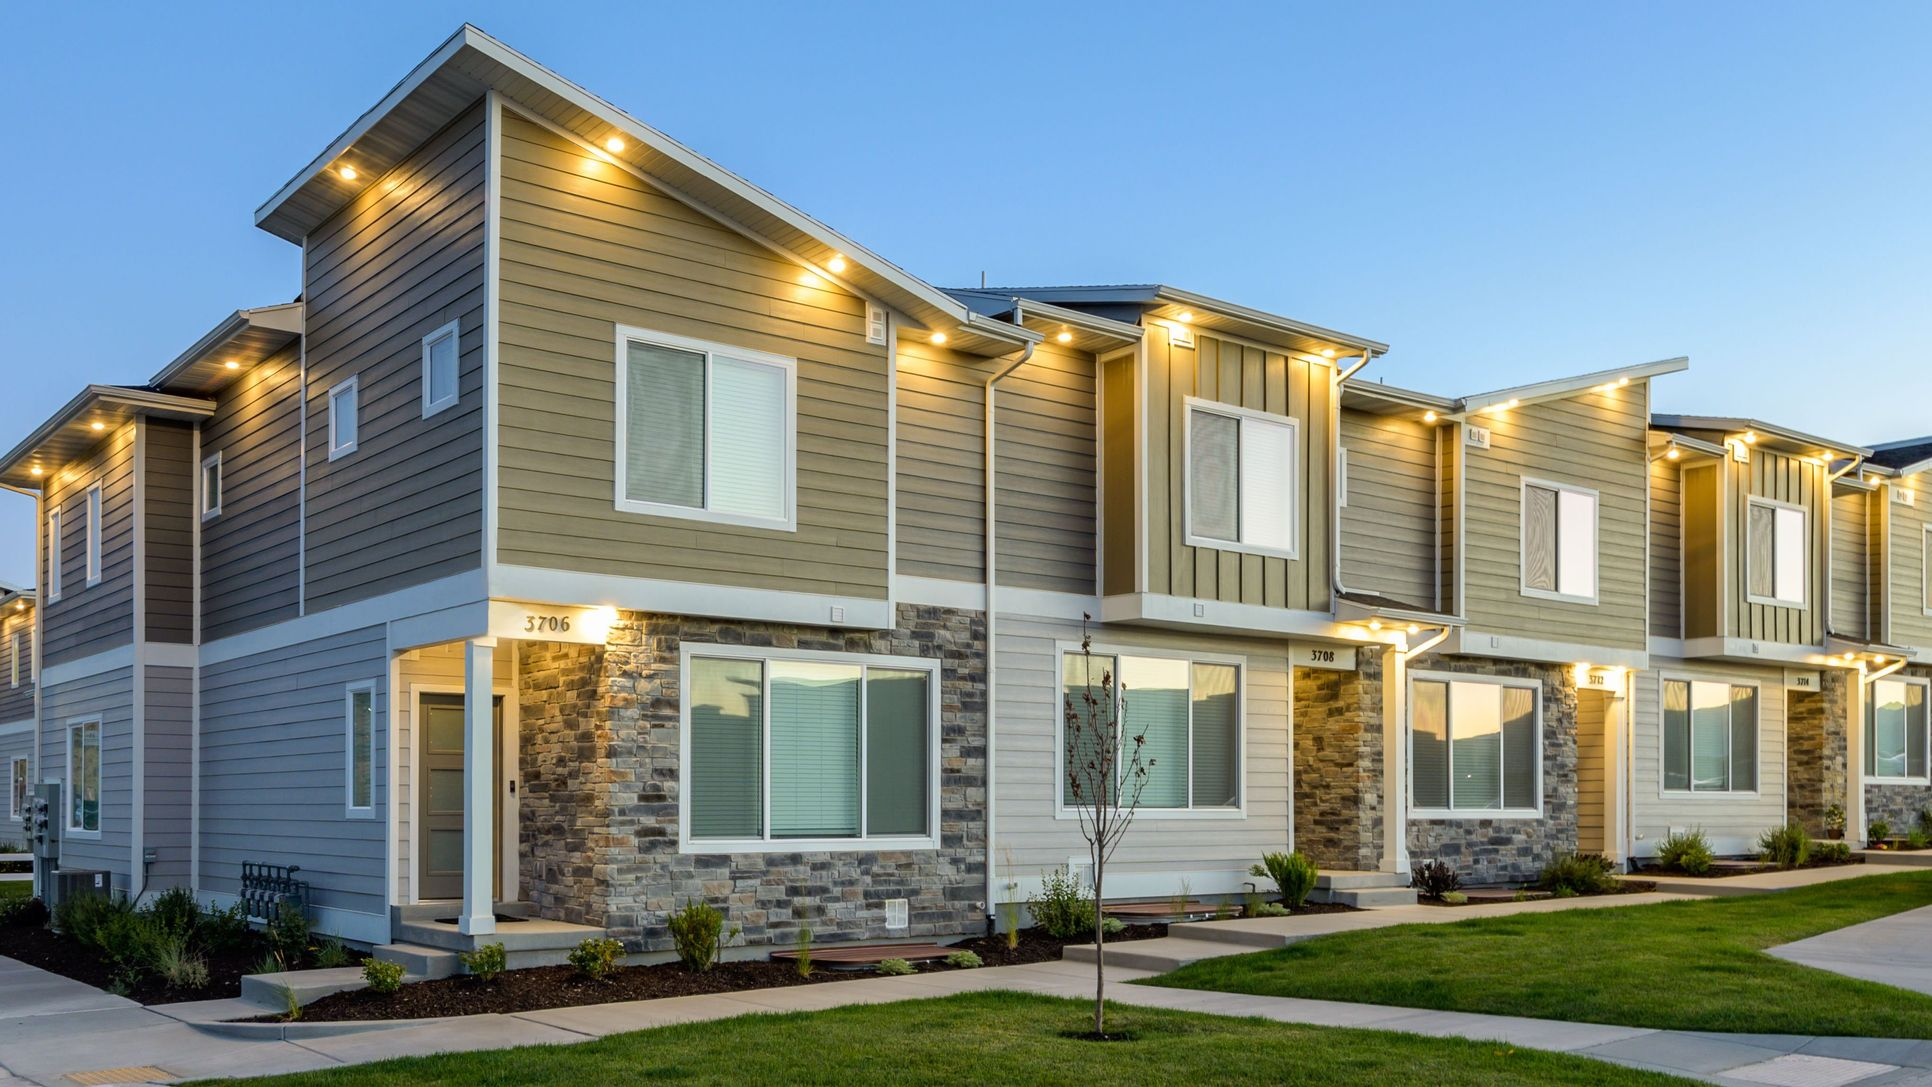 New townhomes for sale in Herriman, UT by Lennar!